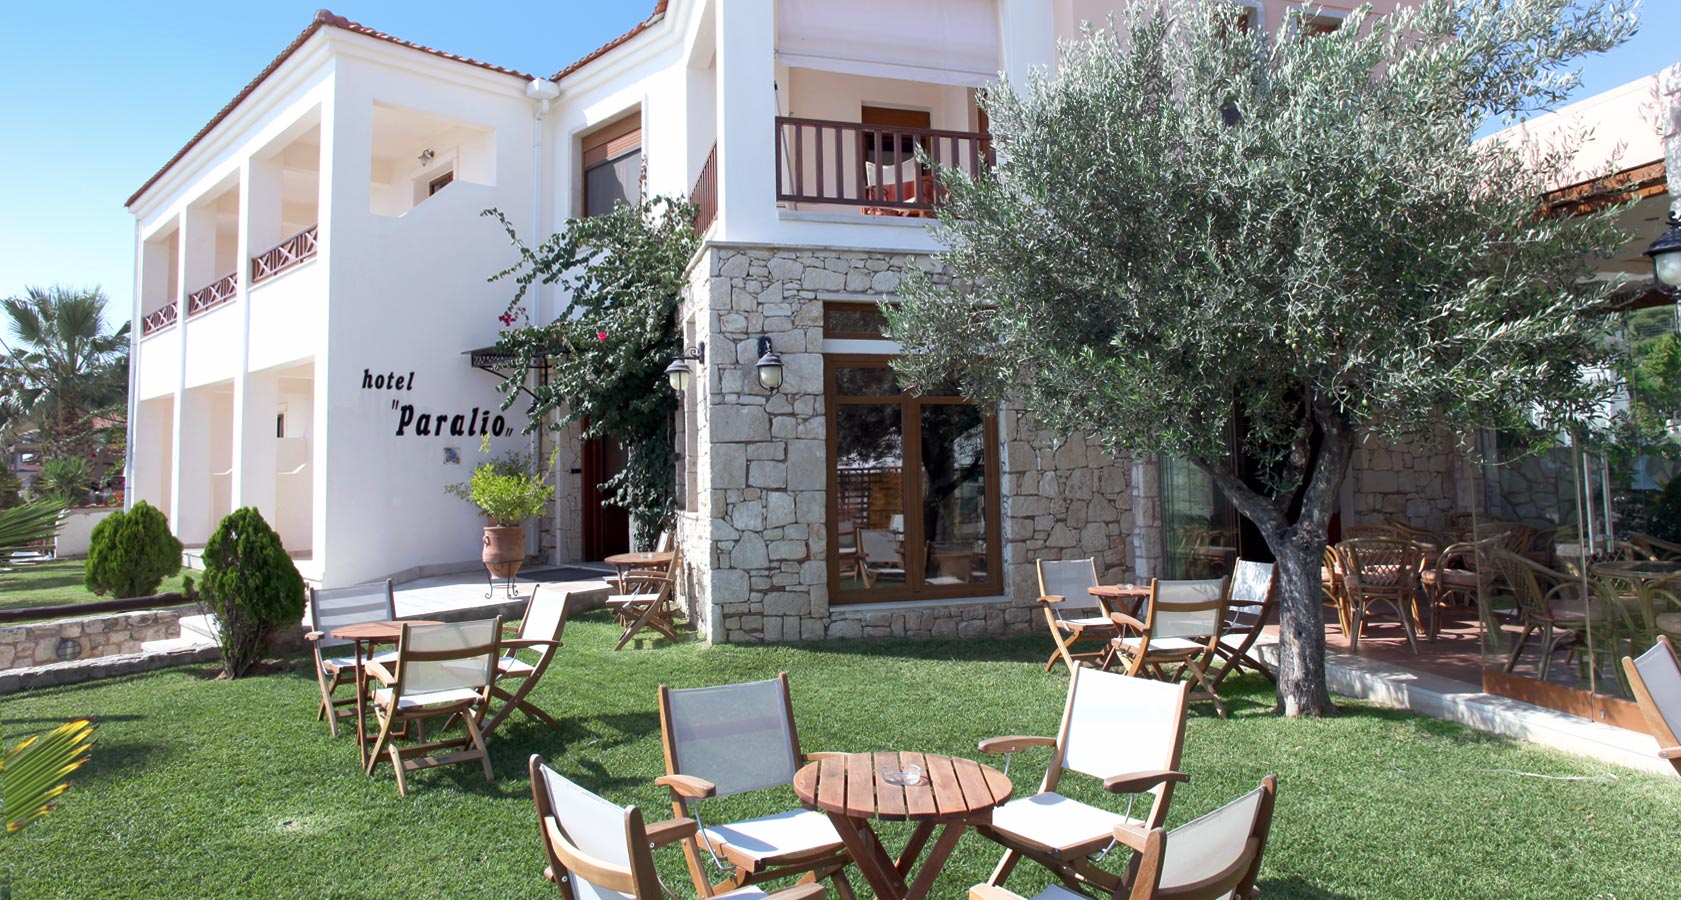 General Overview of Paralio Hotel in Possidi Halkidiki Greece